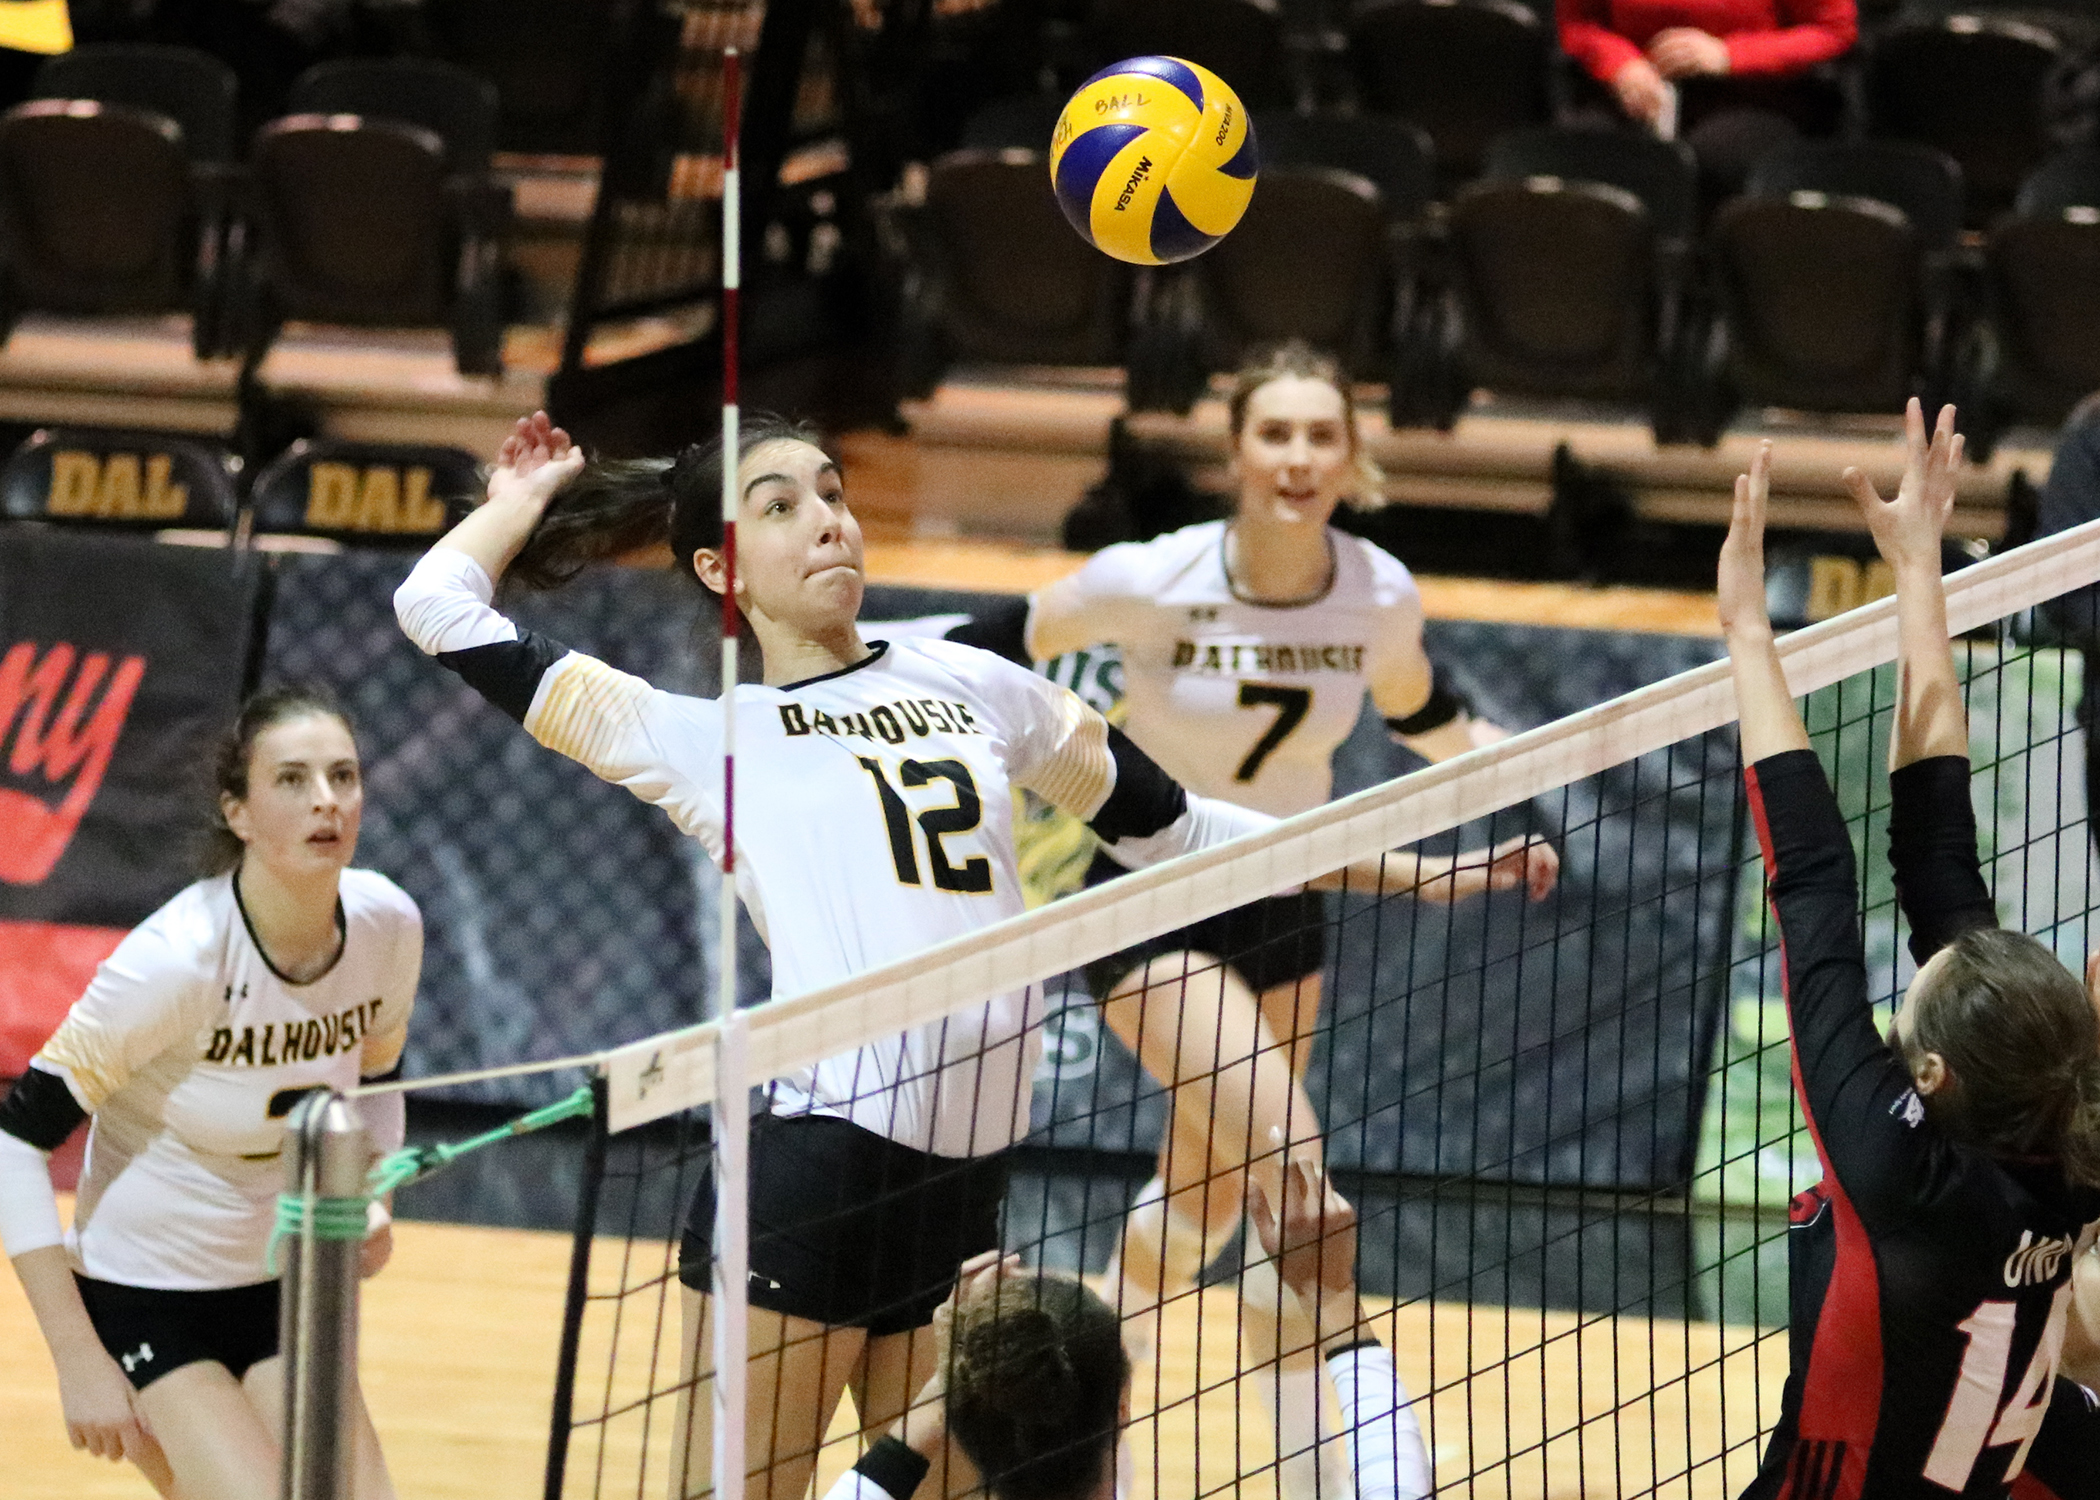 DAL_WVB_2019-20_(Arsenault2).jpg (2.16 MB)